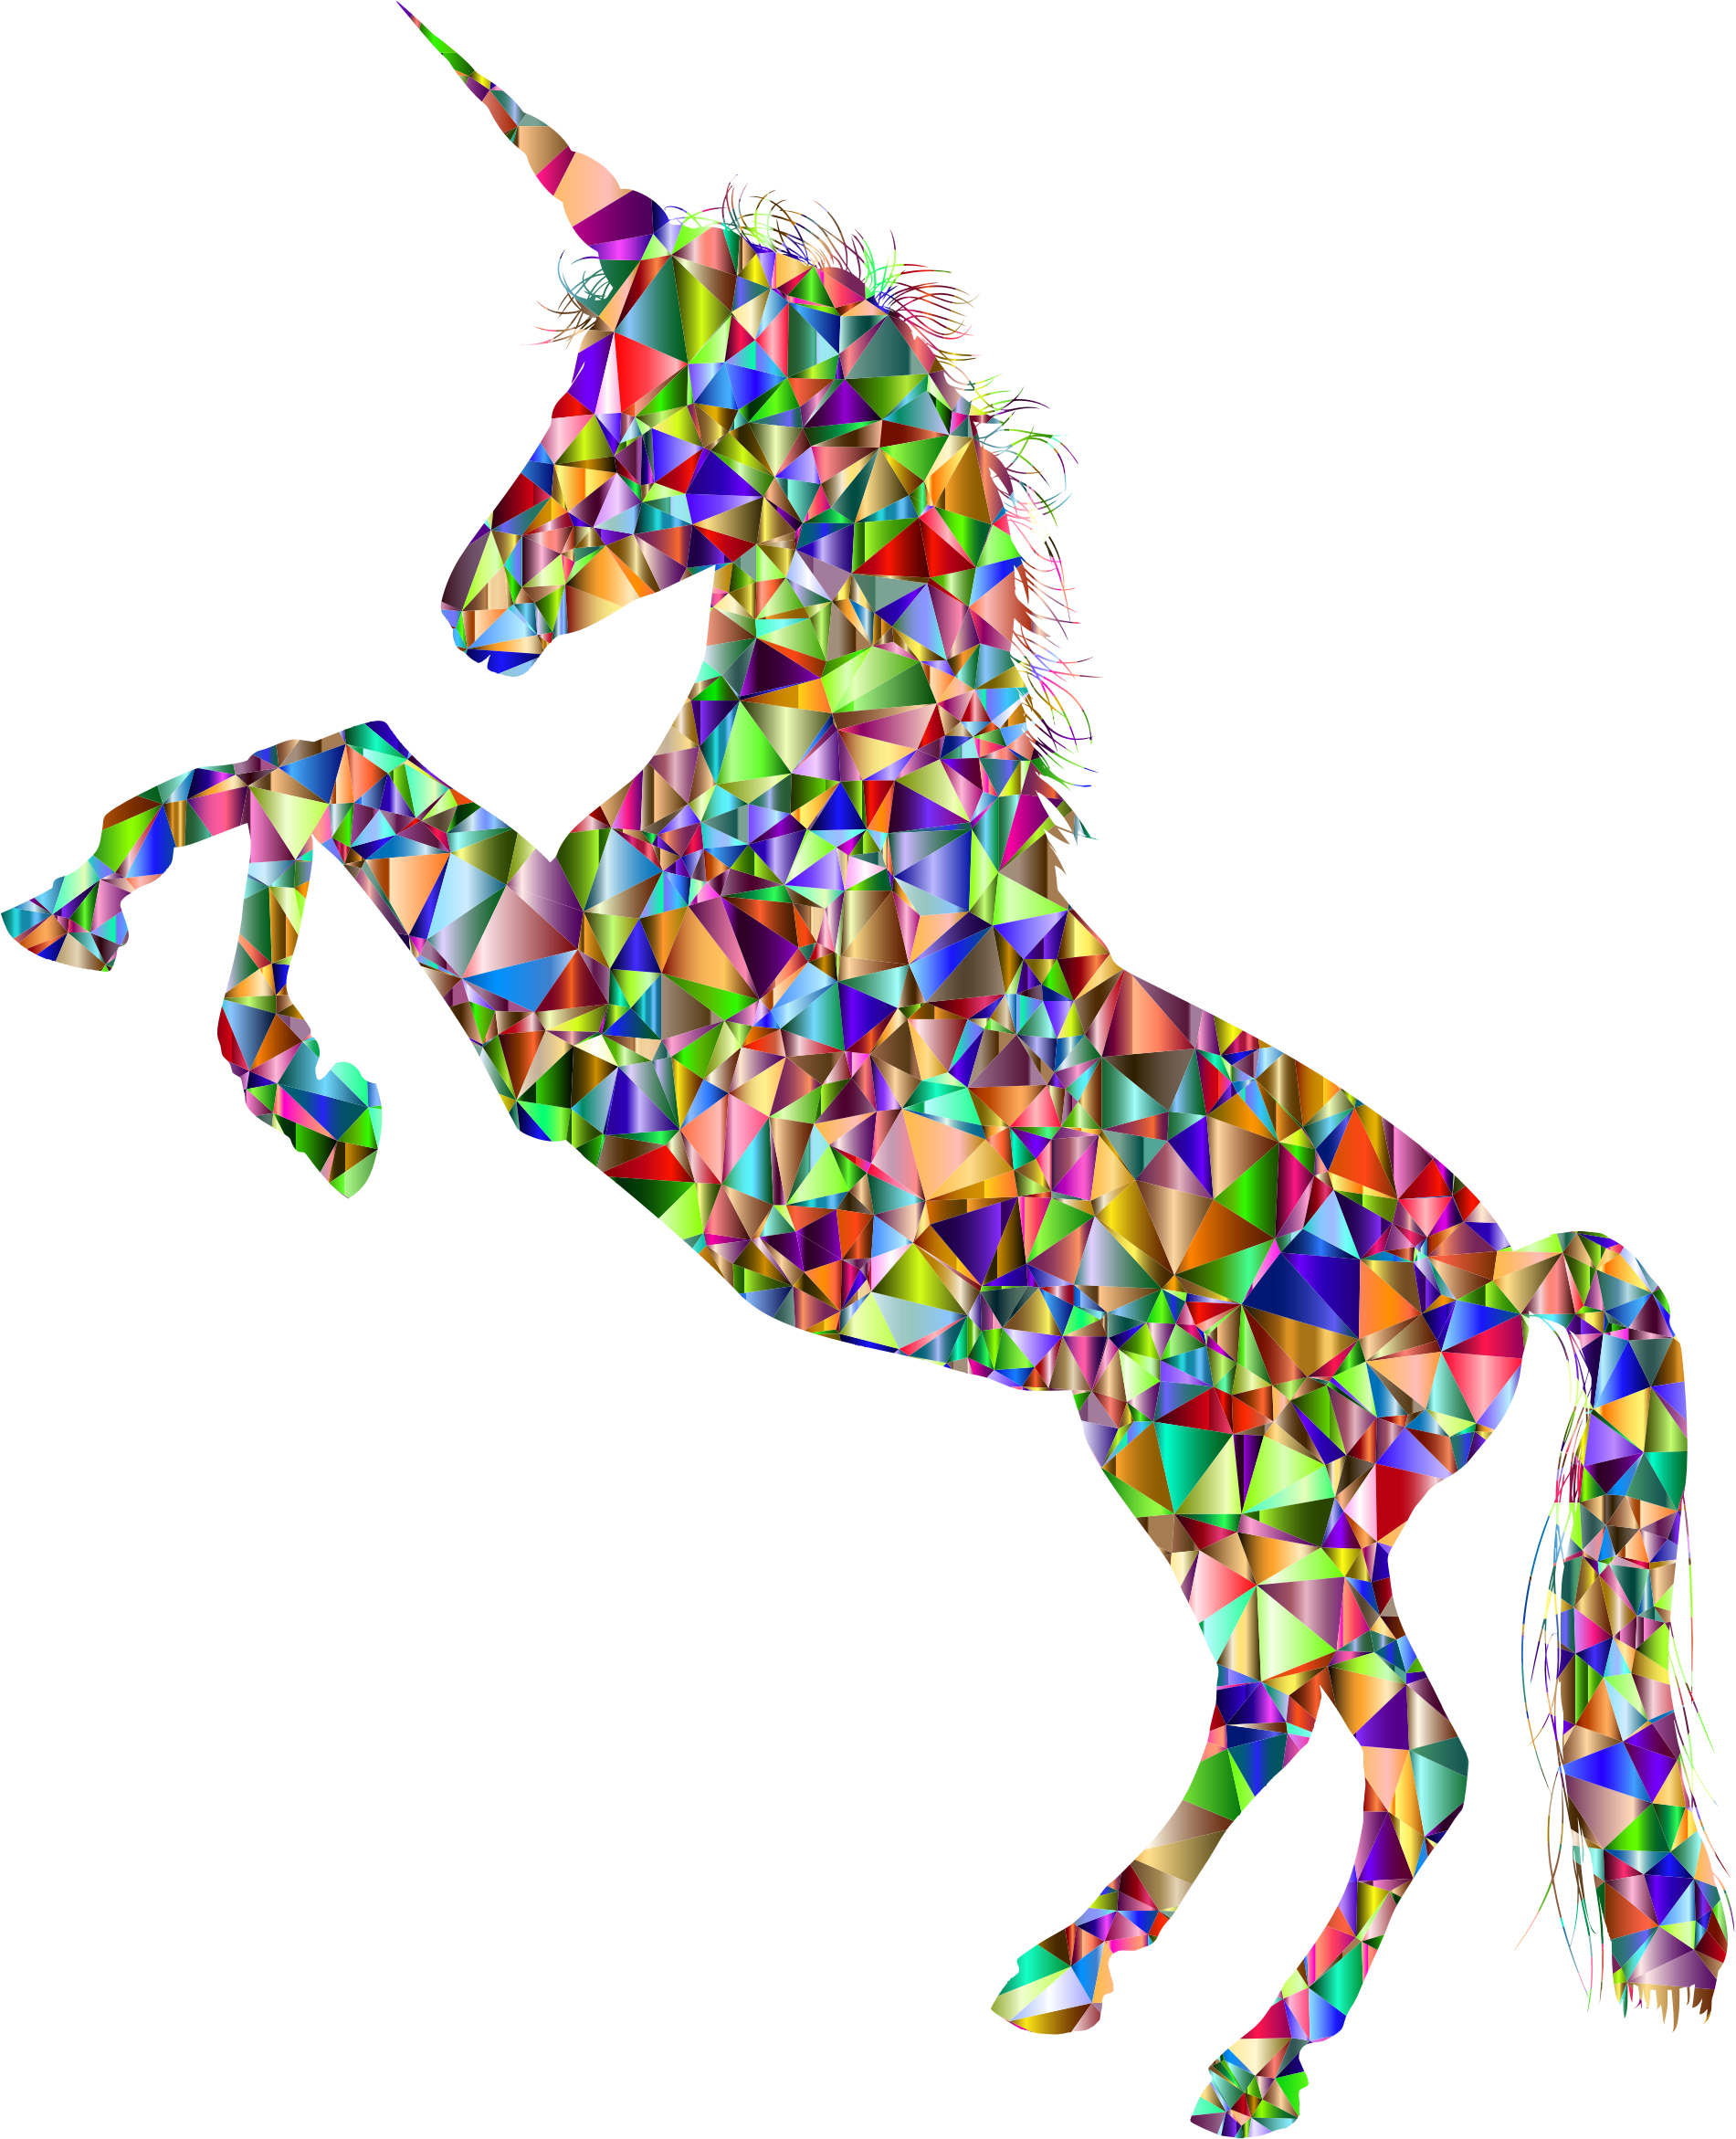 Vivid Chromatic Unicorn Silhouette by GDJ